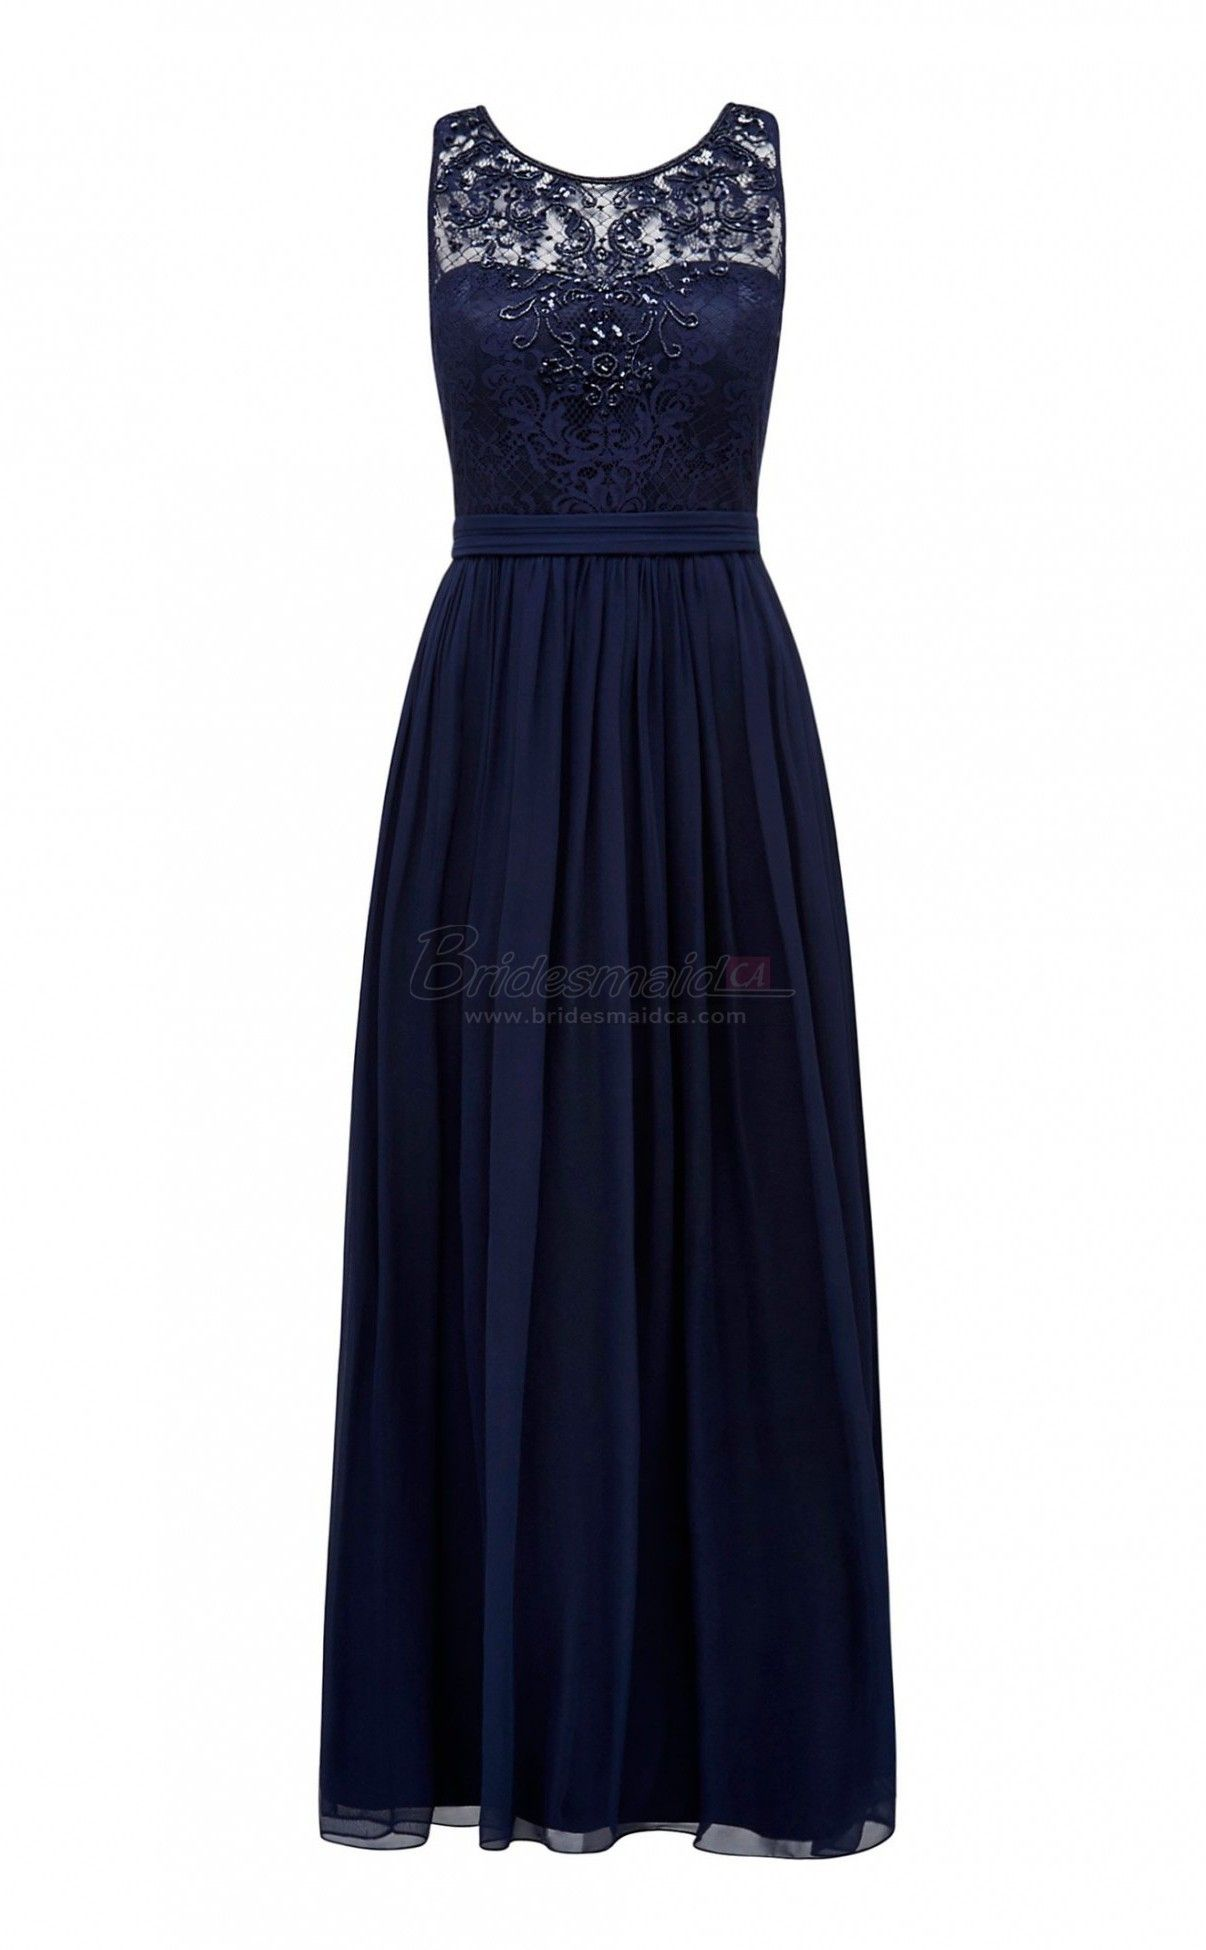 Long chiffon and lace jewel neck blue vintage bridesmaid dress bds long chiffon and lace jewel neck blue vintage bridesmaid dress bds ca391 ombrellifo Images